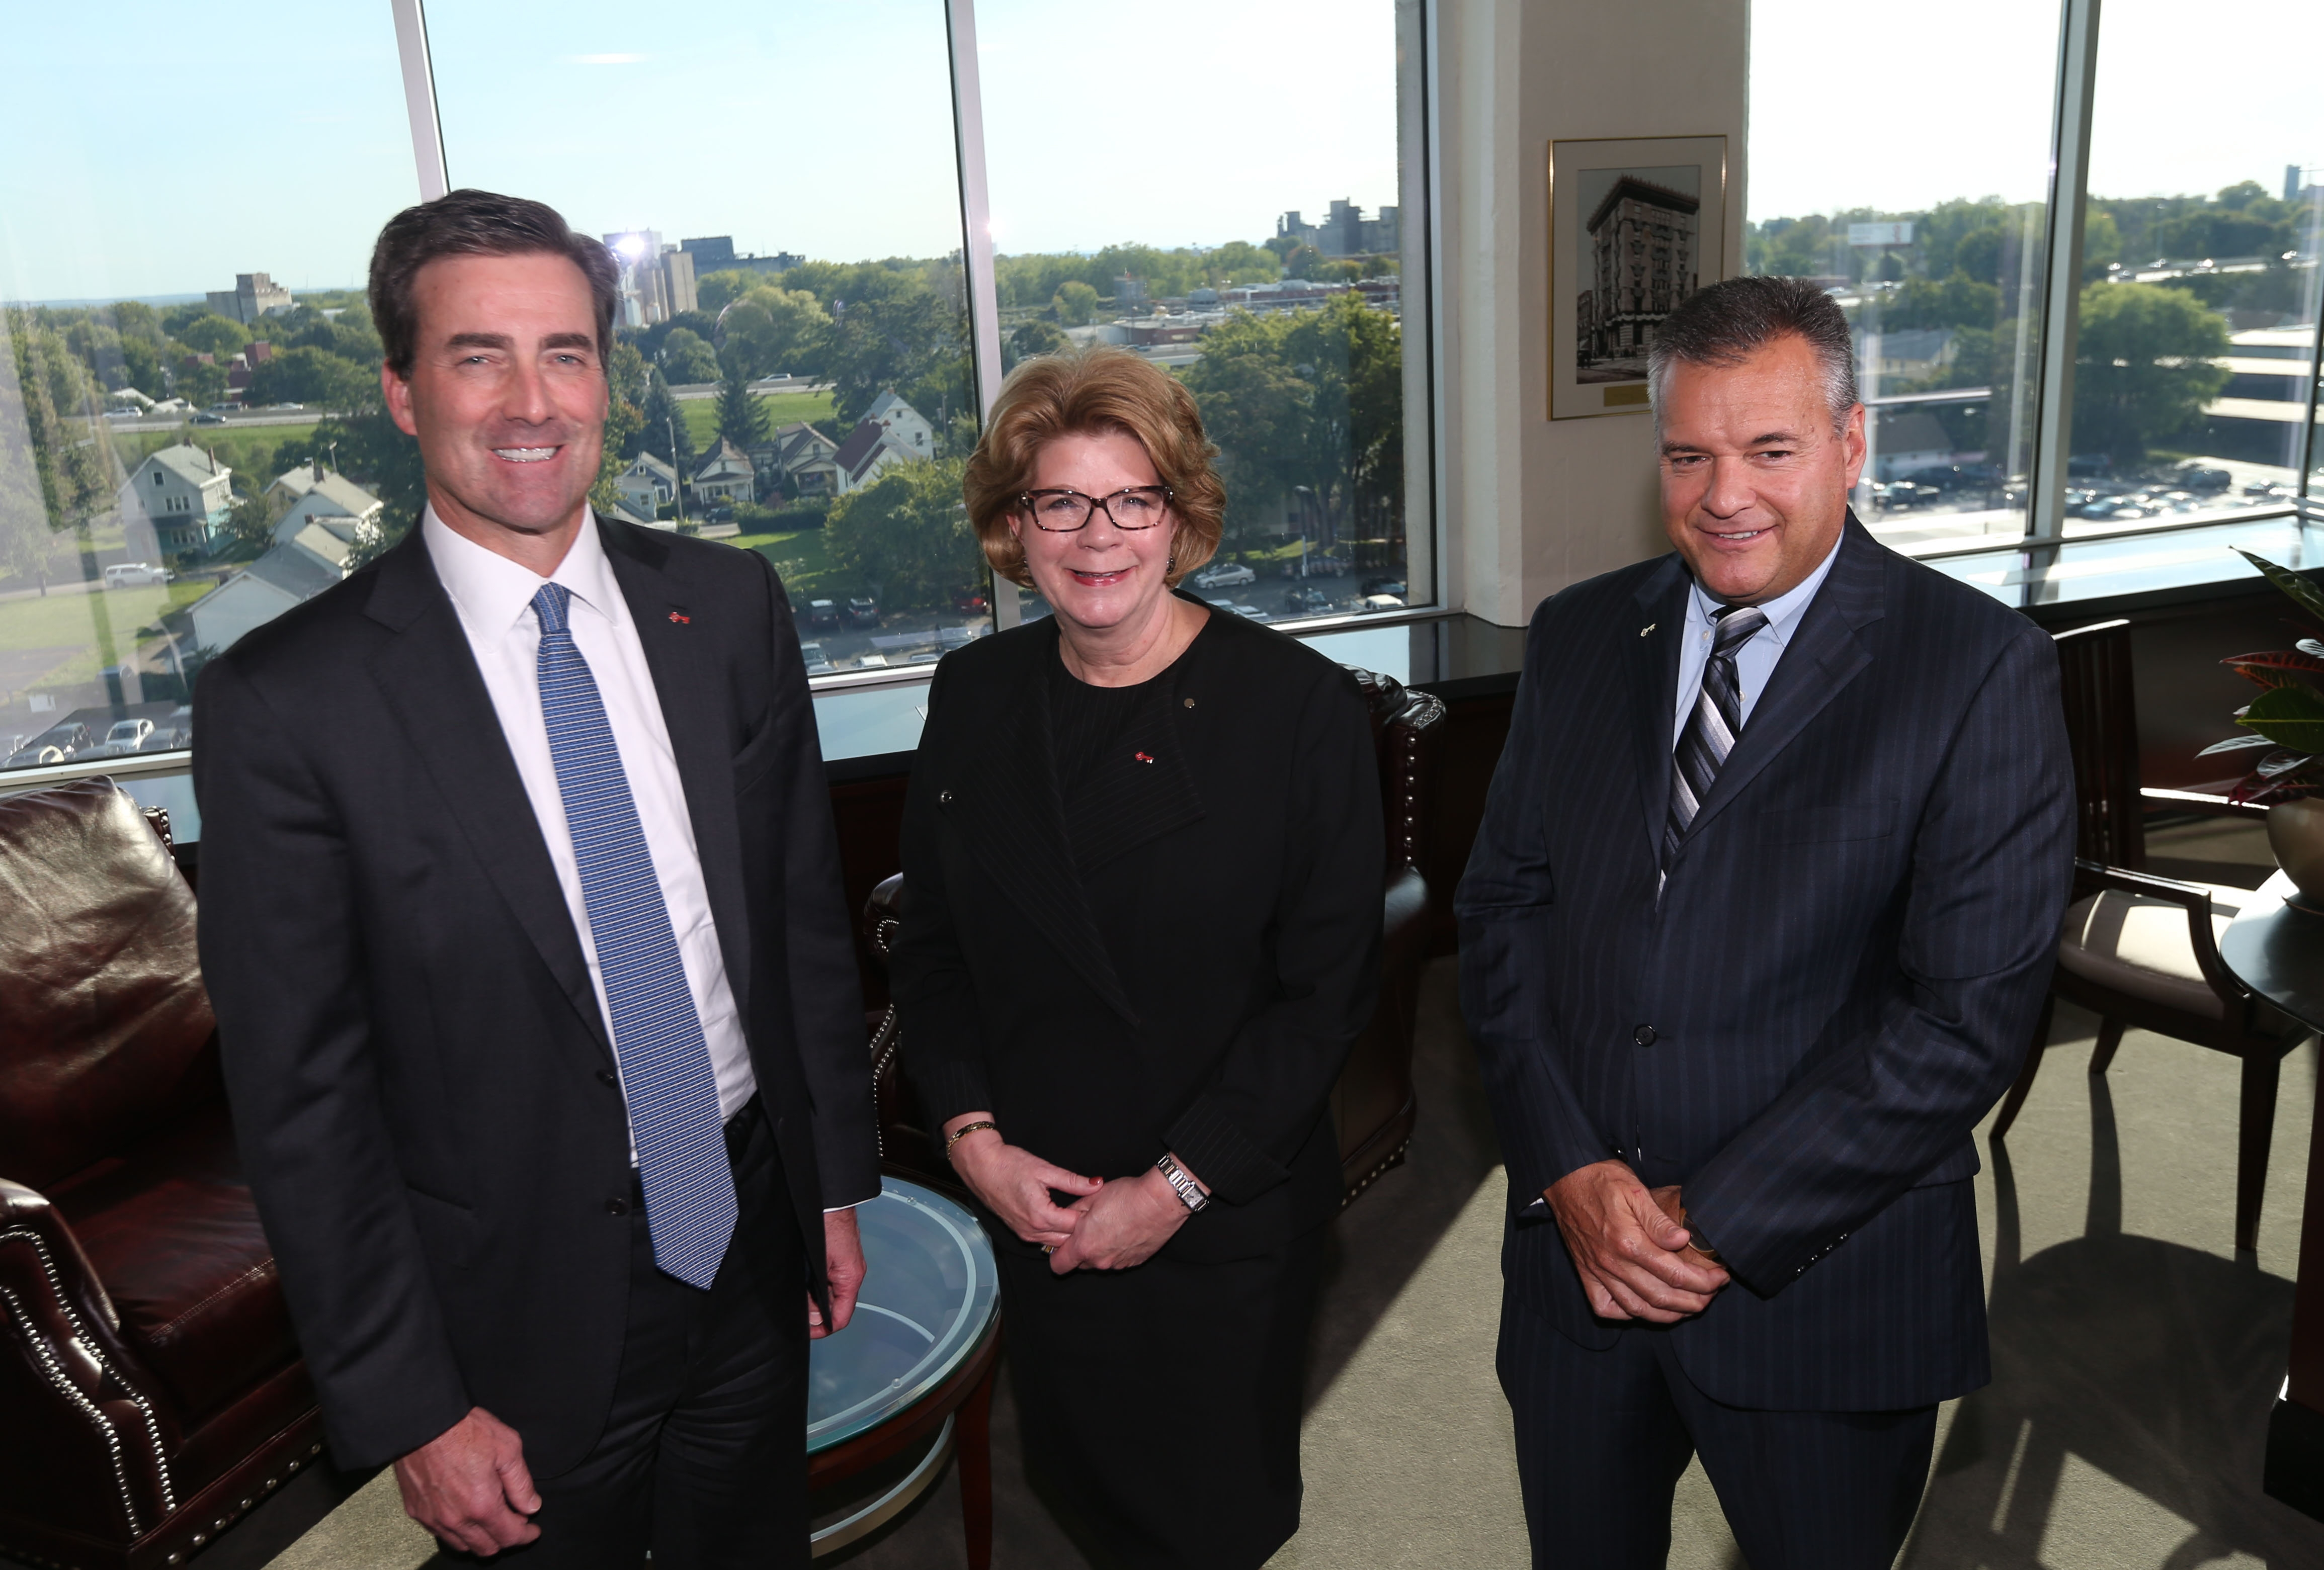 """KeyCorp management team – from left, Christopher M. Gorman, merger-integration executive; Beth E. Mooney, chairwoman and CEO; and Gary D. Quenneville, upstate regional chief – gather at Larkinville to strategize on First Niagara conversion.  """"When your credit card expires and it's time to replace, that's when you get your KeyBank credit card. We're trying to do this in a way where you don't have to change because we changed."""" Beth E. Mooney, Key chief executive"""